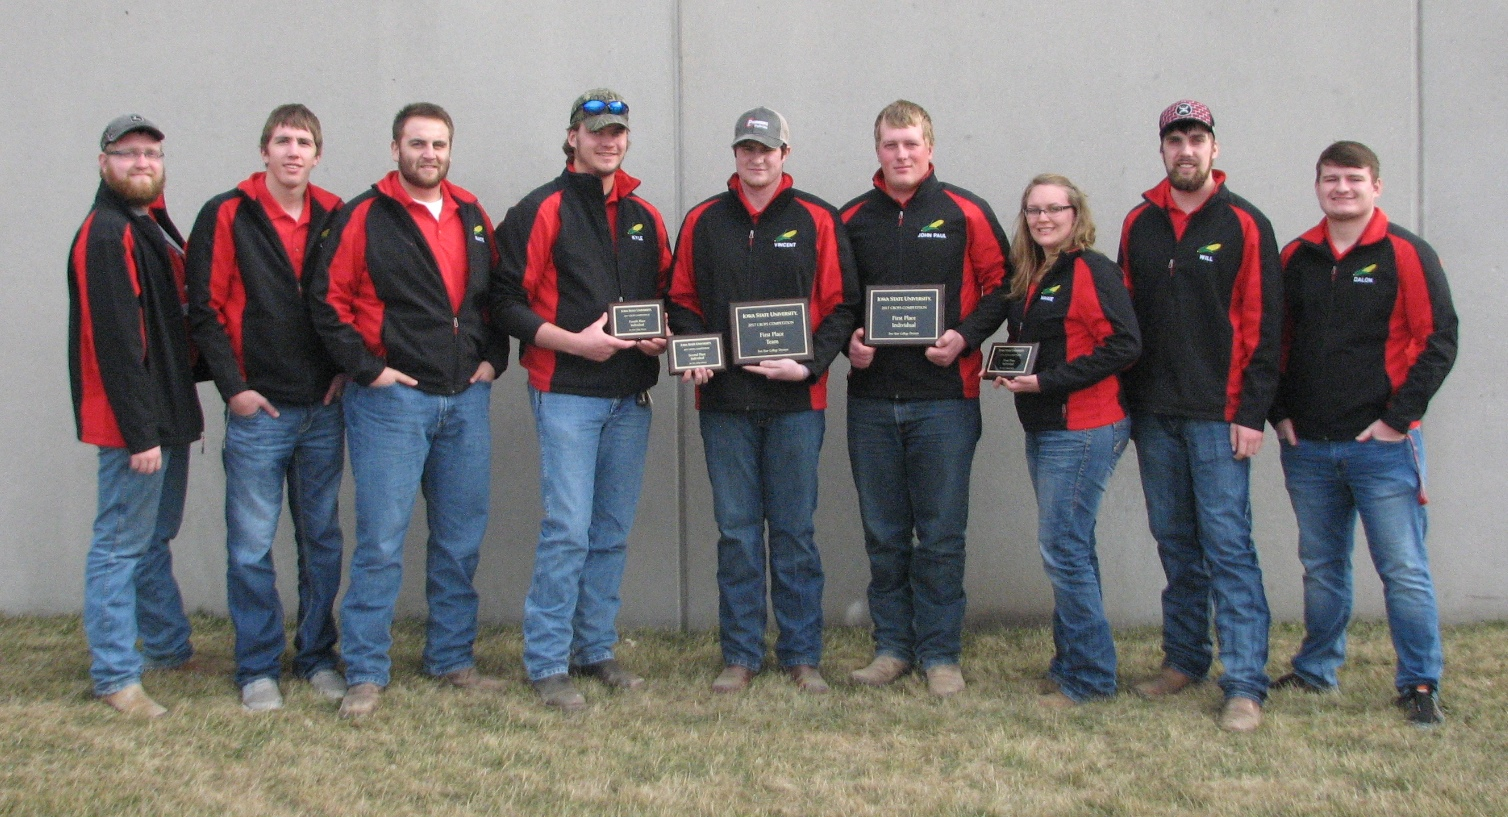 The Nebraska College of Technical Agriculture 2017 Crops Team (left to right) Brent Thomas, Alliance;  Lee Jespersen, Hemingford; Nate Montanez, Grand Island; Kyle Krantz, Alliance, 4th place; Vincent Jones, Kirwin, Kan., 2nd place; John Paul Kain, McCook, 1st place; Maggie Brunmeier, Bayard, 3rd place; Will Kusant, Comstock; and Dalon Koubek, North Platte. (Ramsdale/NCTA photo)